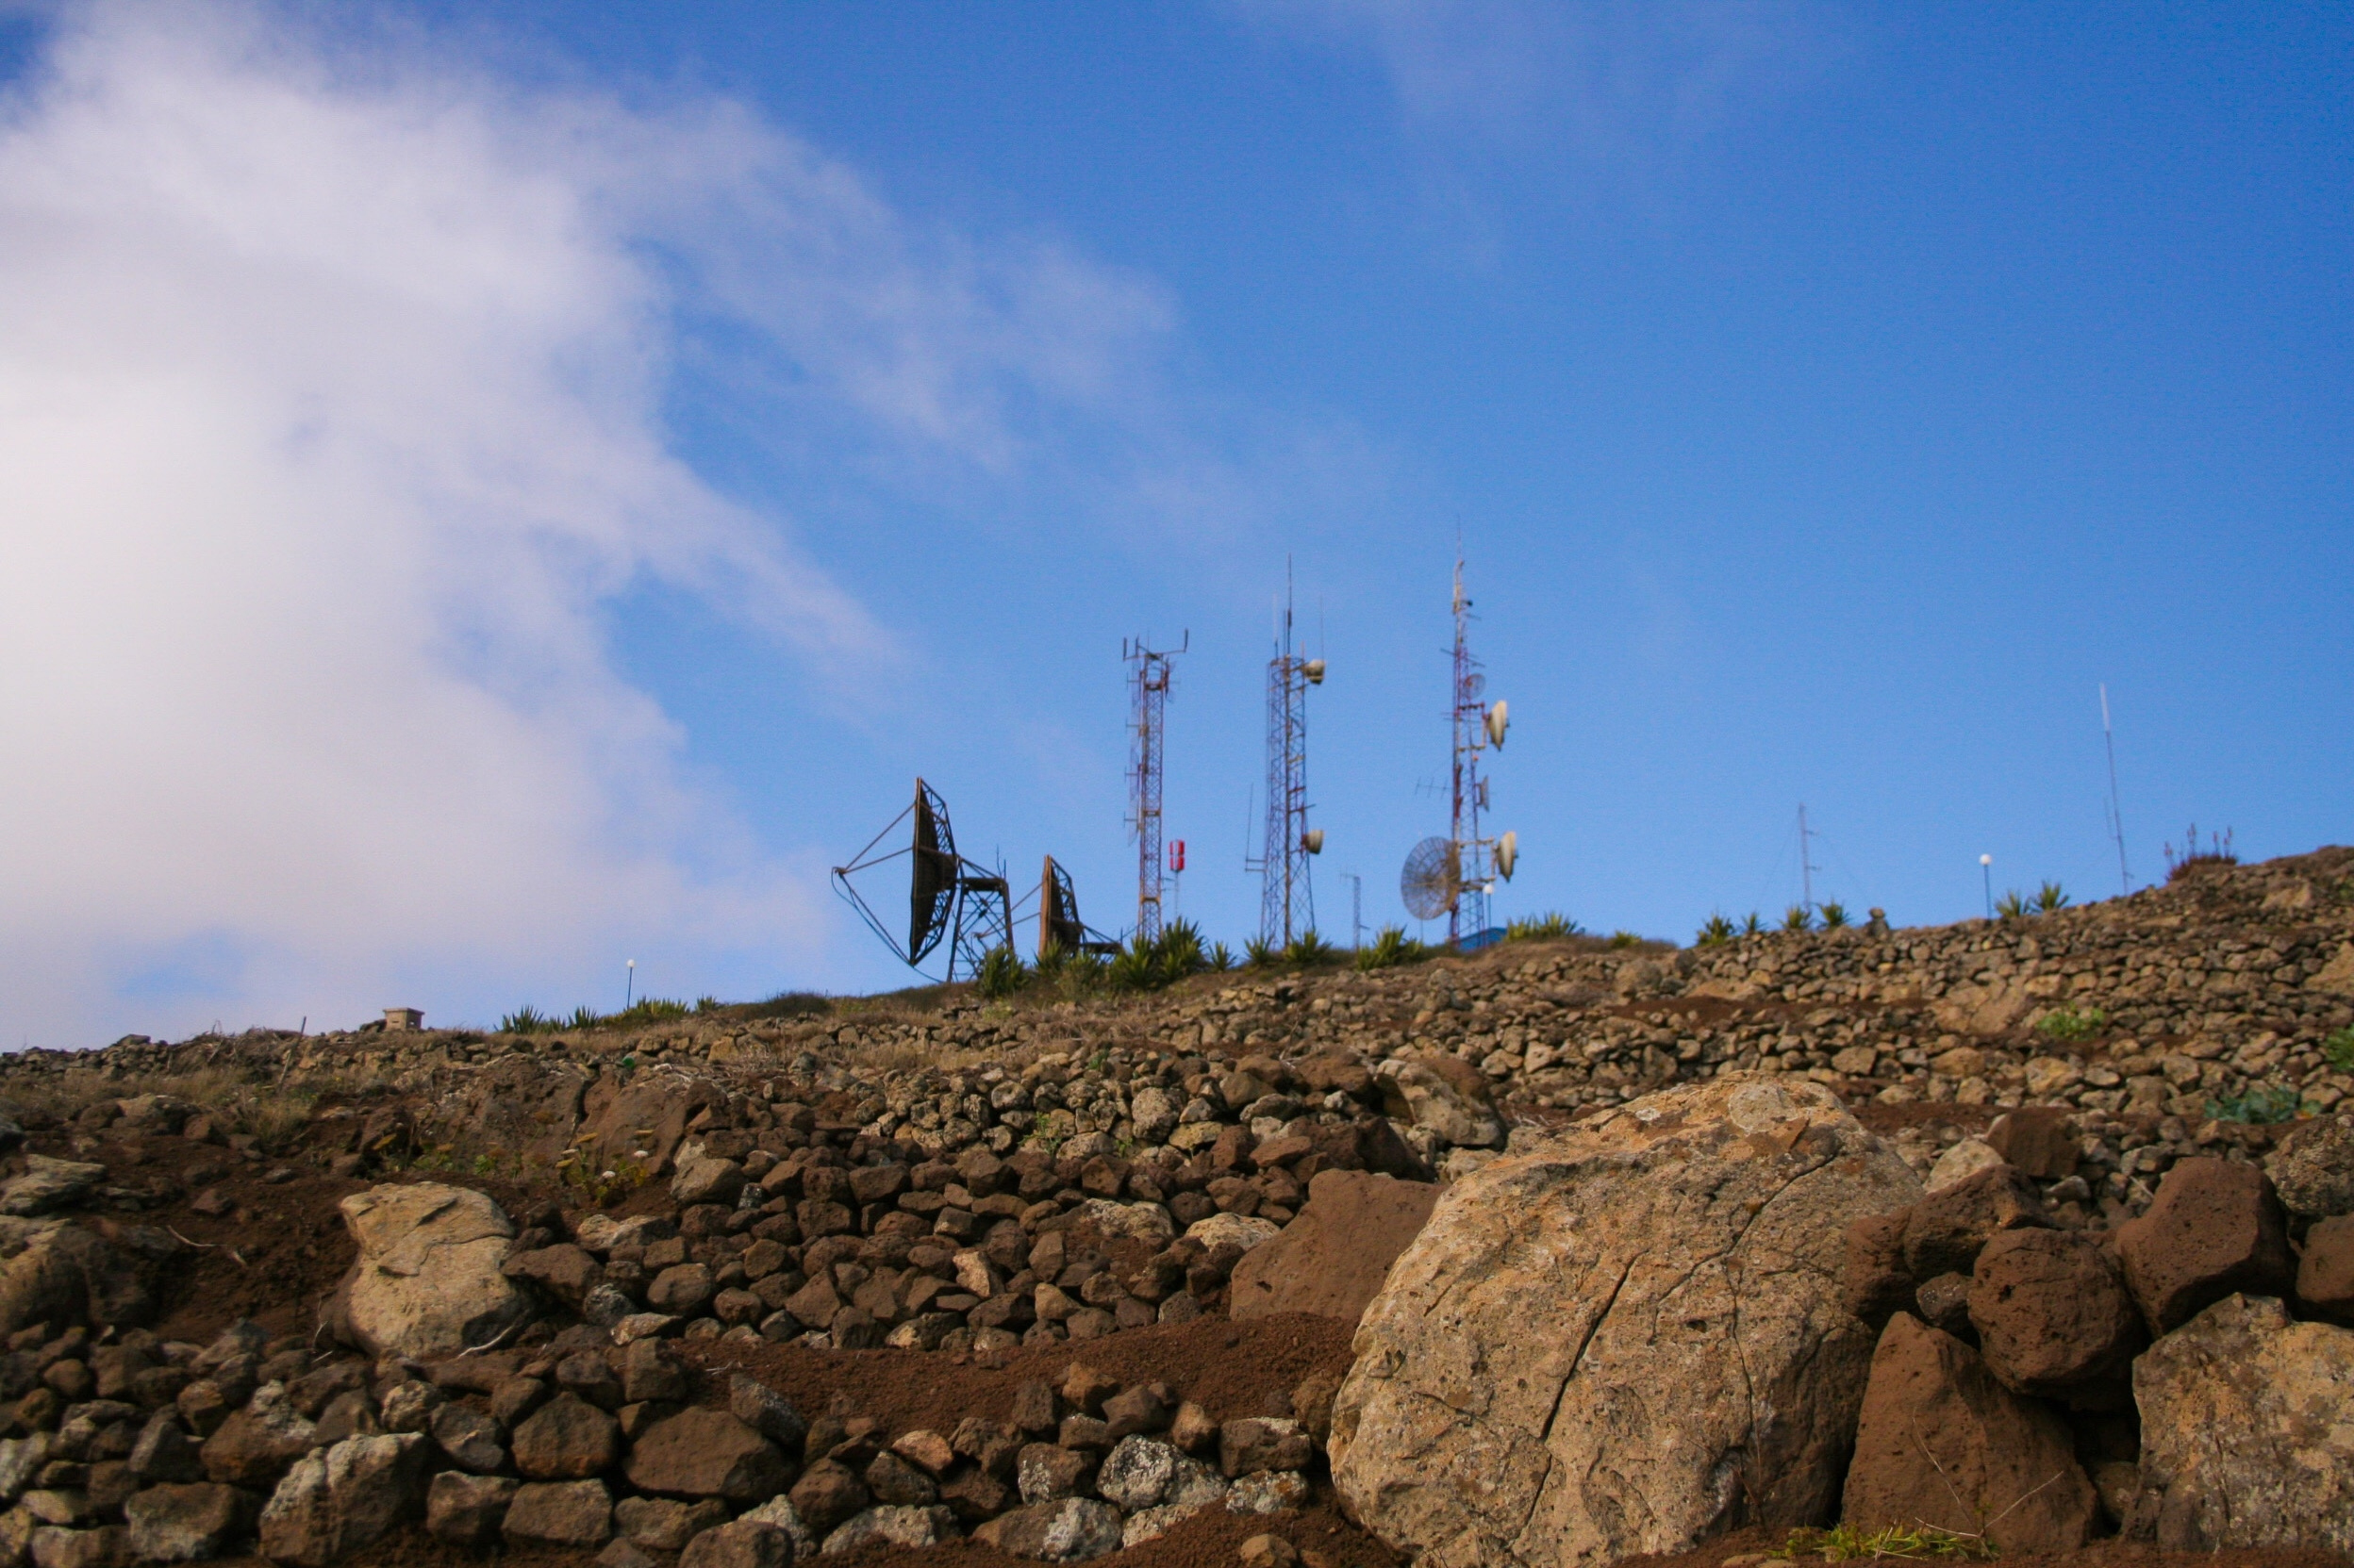 Low Angle View Of Repeater Towers And Satellite Dish On Field